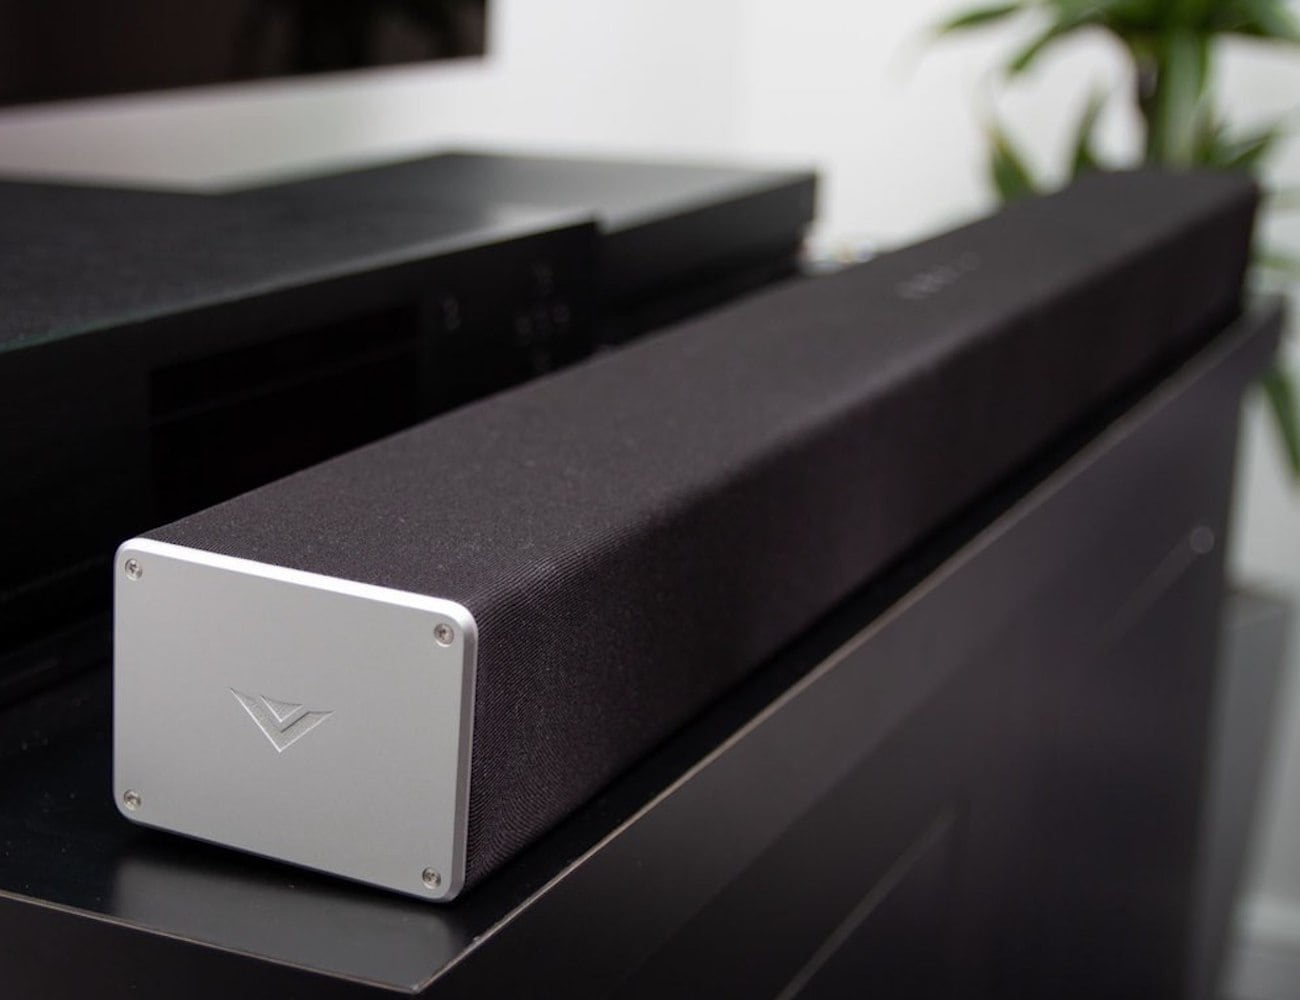 Vizio 5.1.2 Dolby Atmos Home Cinema System gives you incredible surround sound